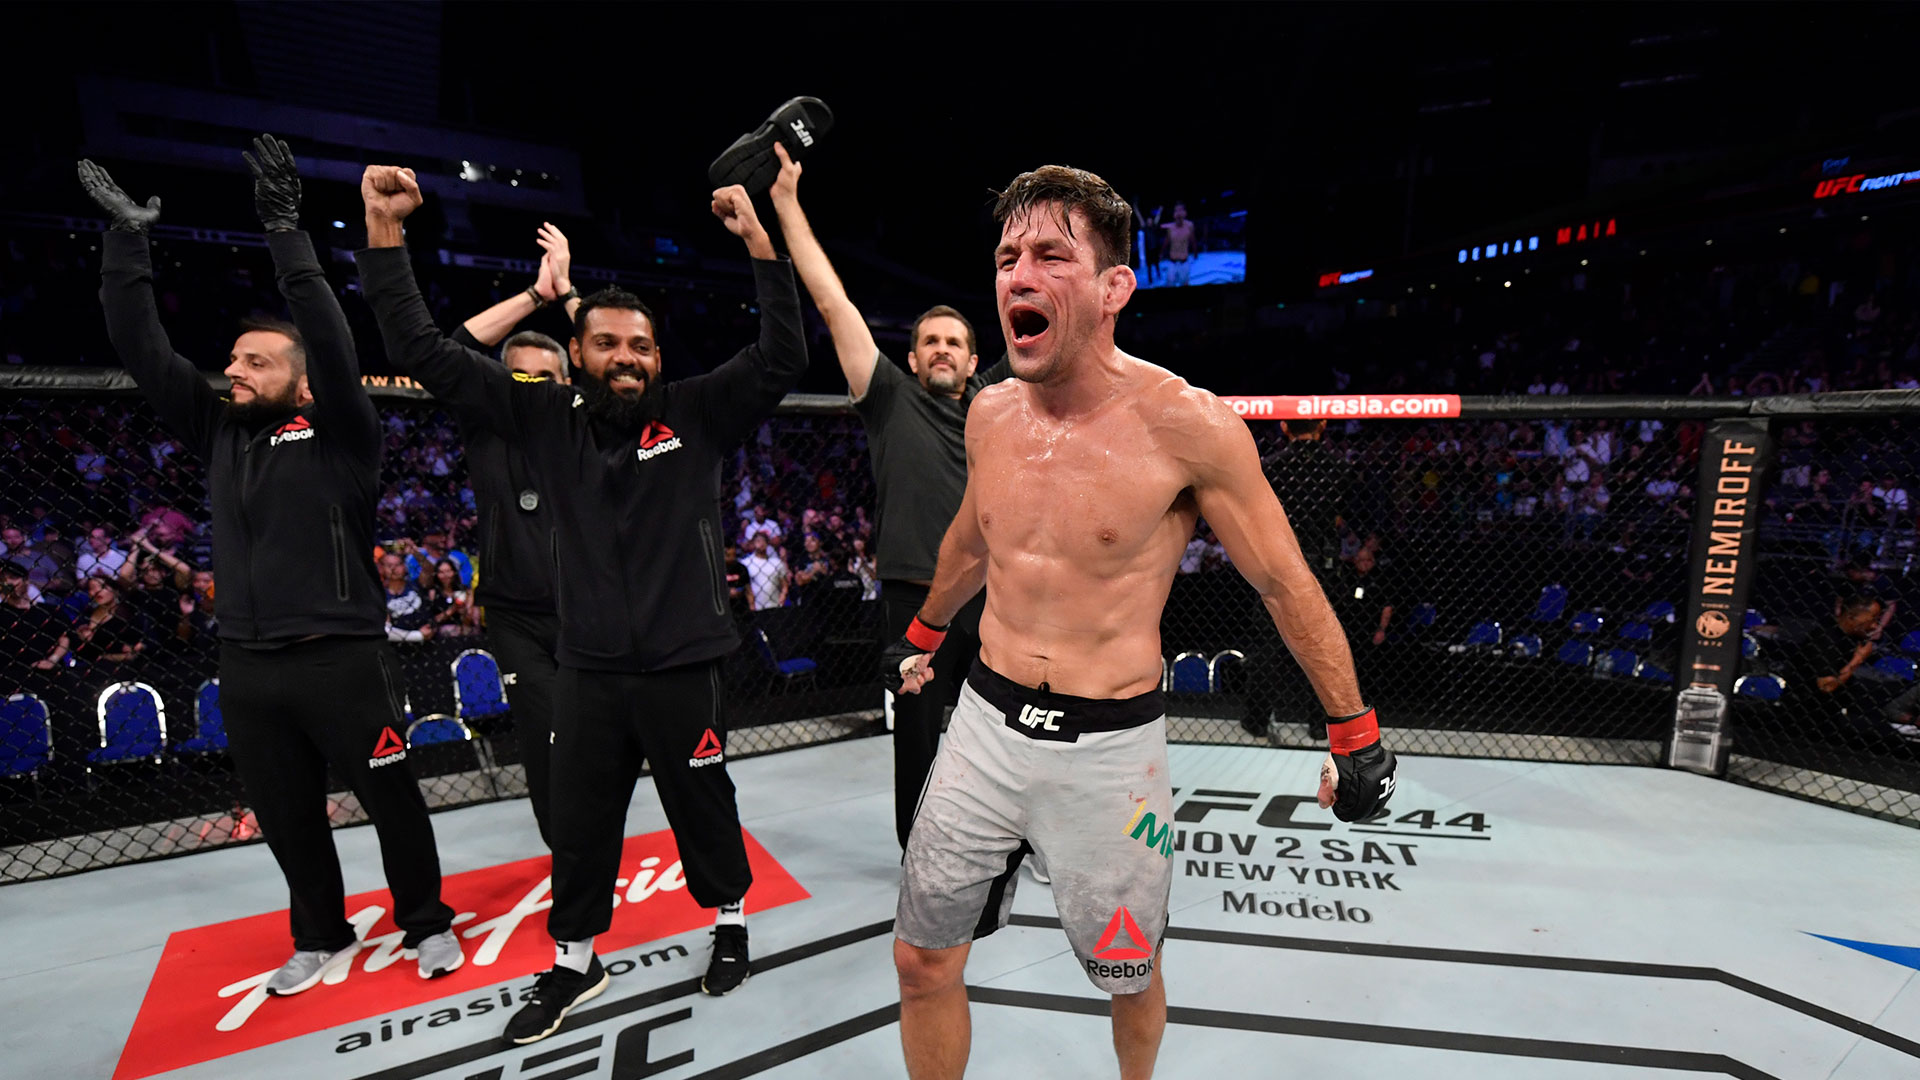 Demian Maia of Brazil celebrates his submission victory over Ben Askren in their welterweight bout during the UFC Fight Night event at Singapore Indoor Stadium on October 26, 2019 in Singapore. (Photo by Jeff Bottari/Zuffa LLC)